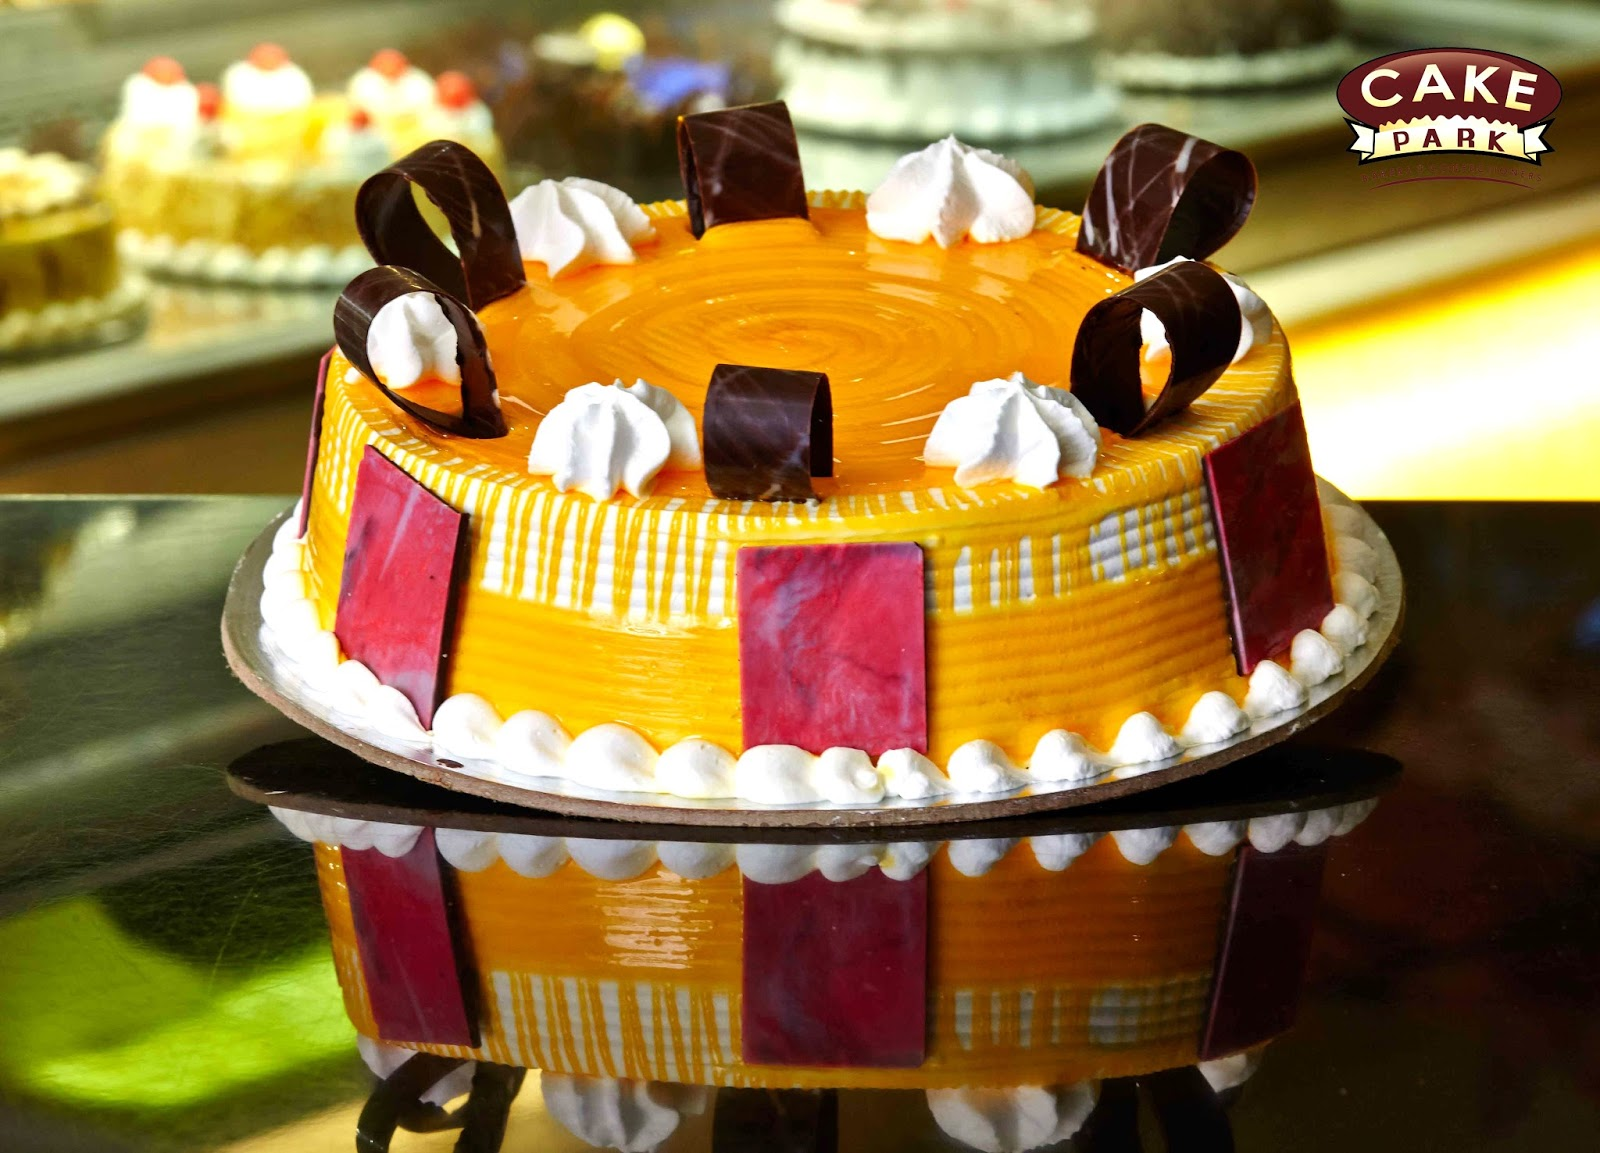 Cake Park Is A Shop Which Specializes In Bringing Out The Best Fresh And Delicious Cakes For All Occasions Most Common Being Birthday Parties